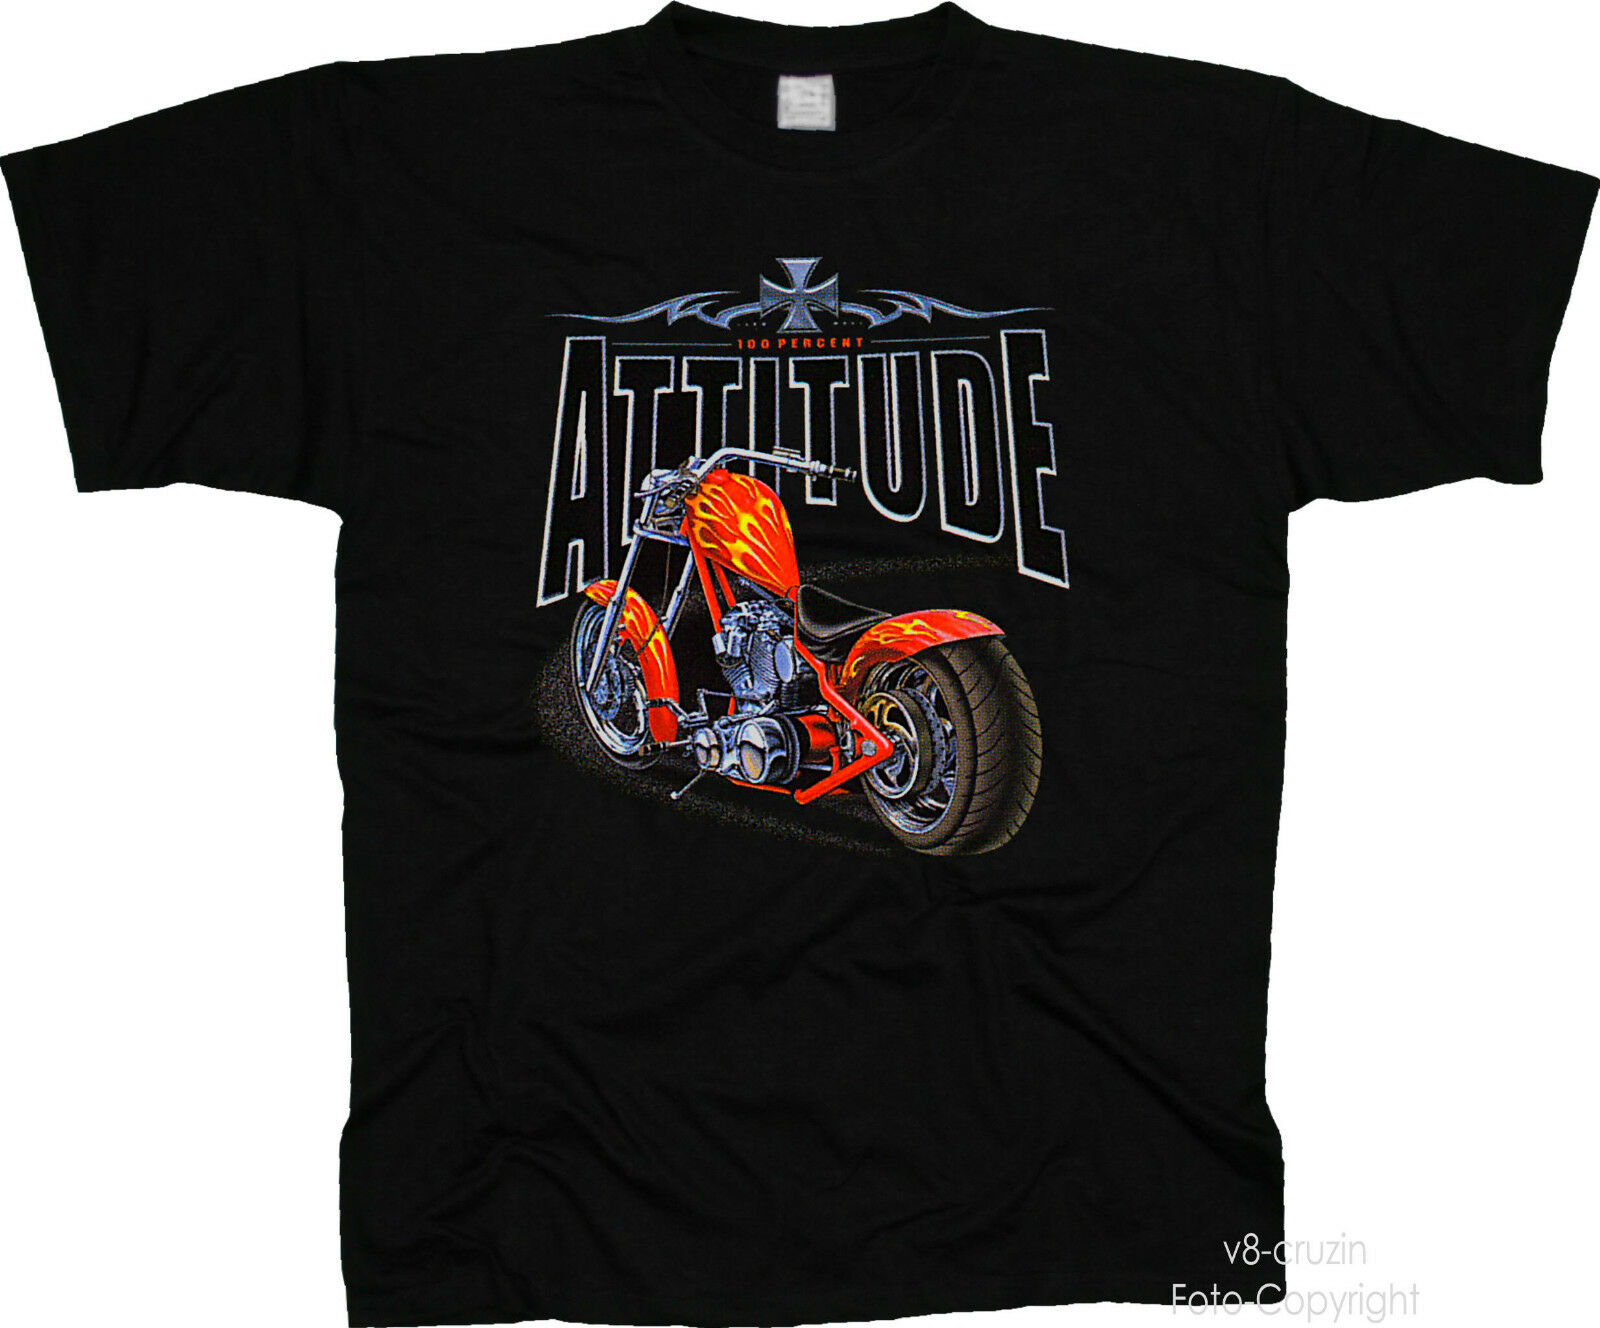 * Biker Custom Motorcycle * Chopper Moto T-Shirt * Motorcycle 4009 BL 892892